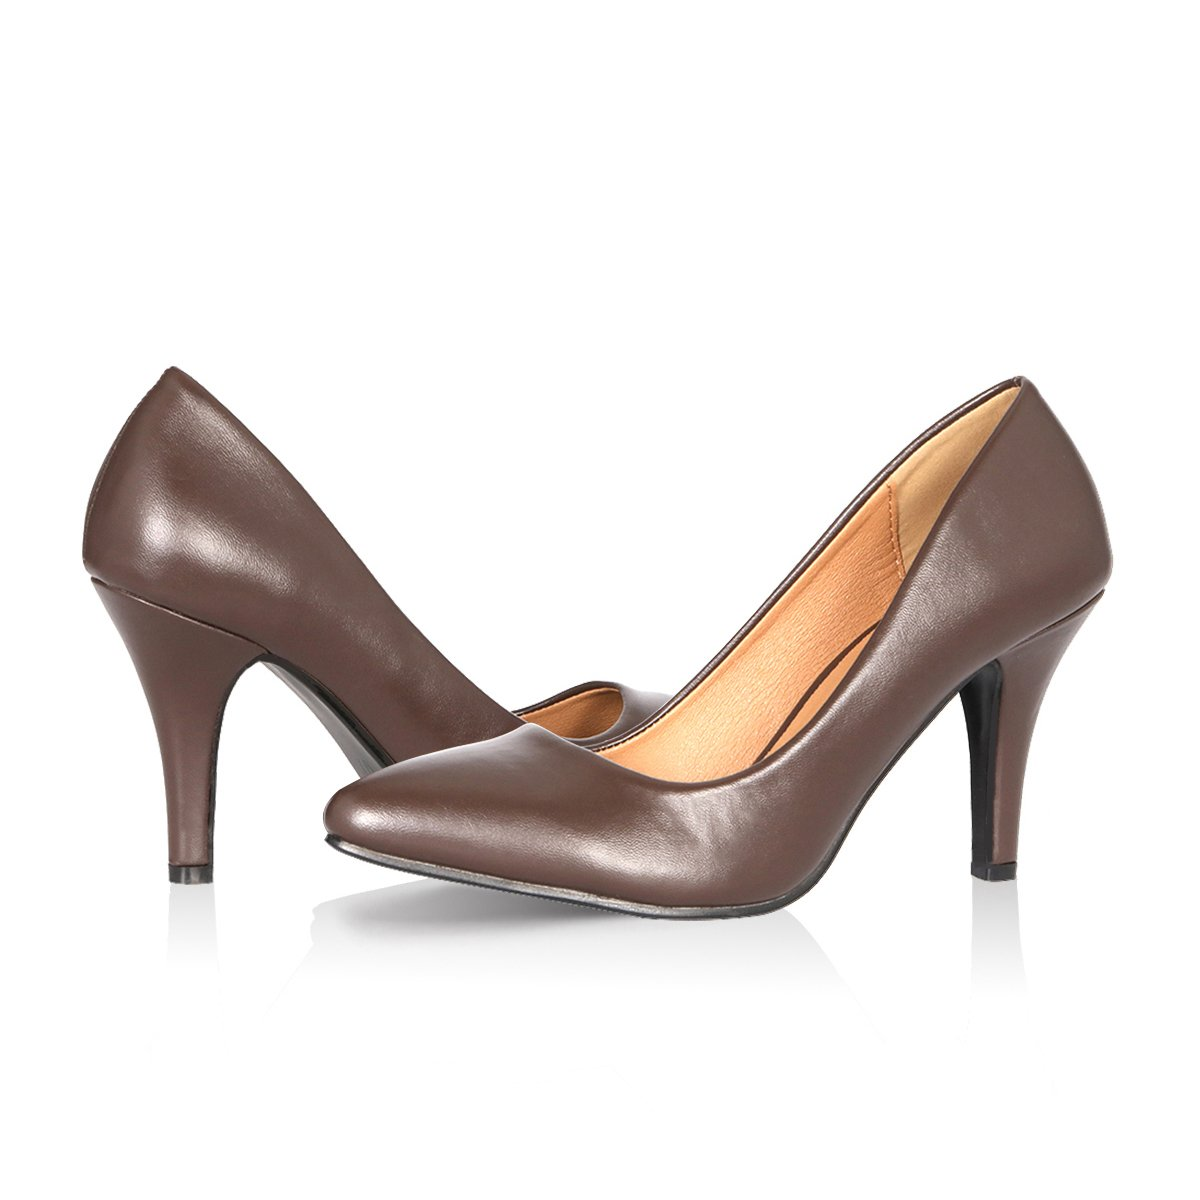 Yeviavy High Heels - Women's Pumps Stiletto Pointy Toed Dress Fashion Shoes JennaNs Dark Brown PU 8